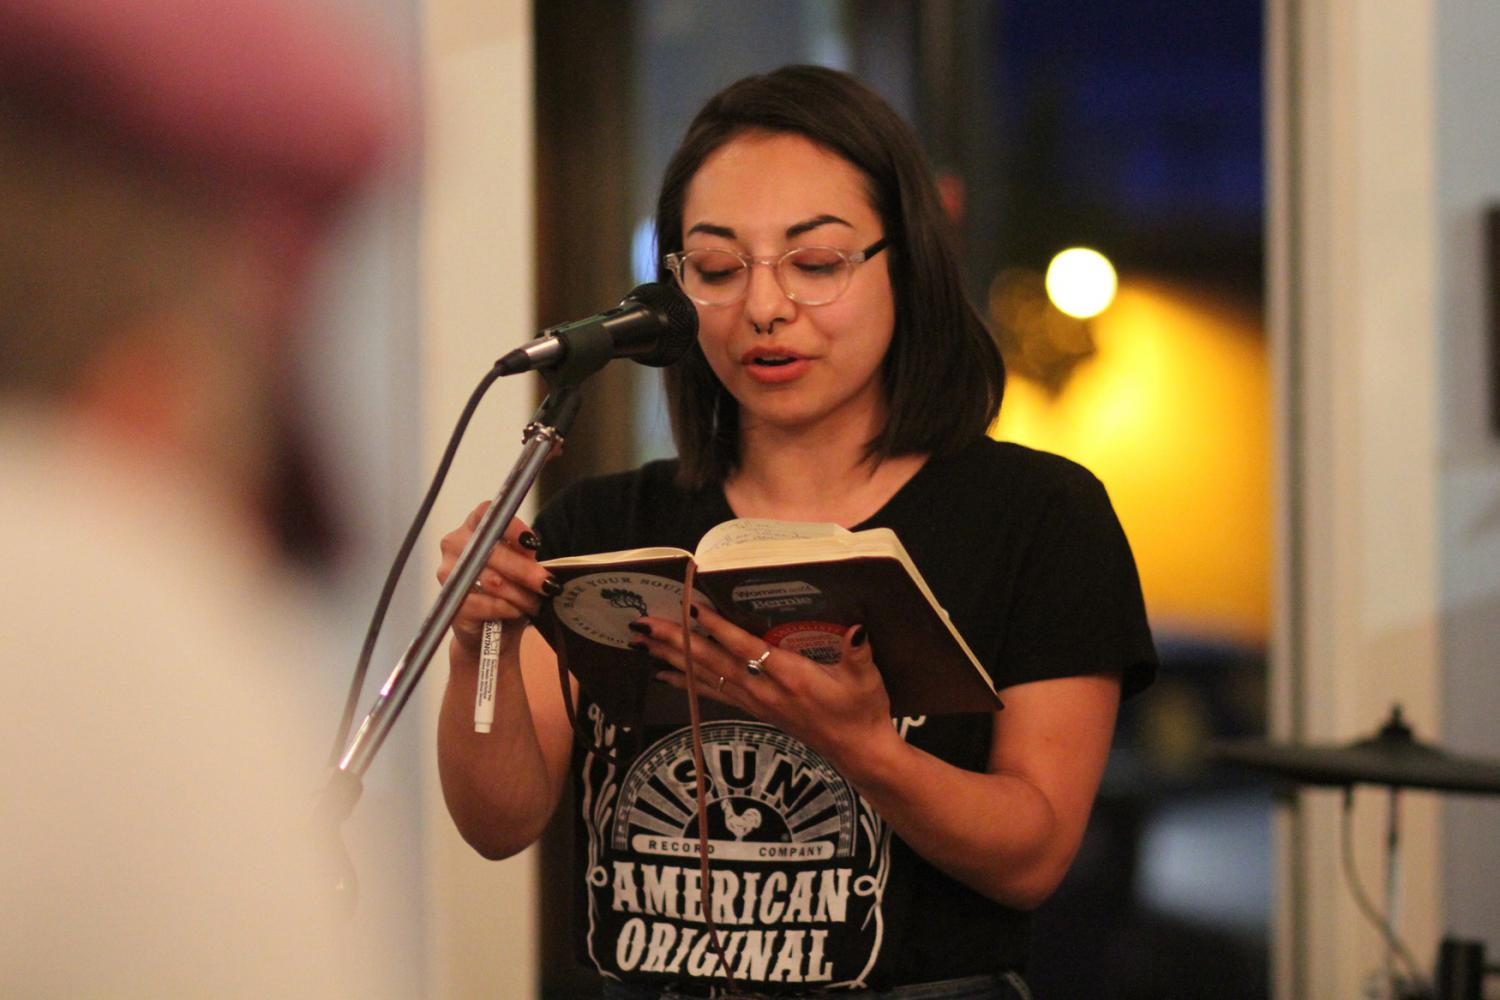 Veronica Murray performing her own poetry at The Mason Jar's open mic night